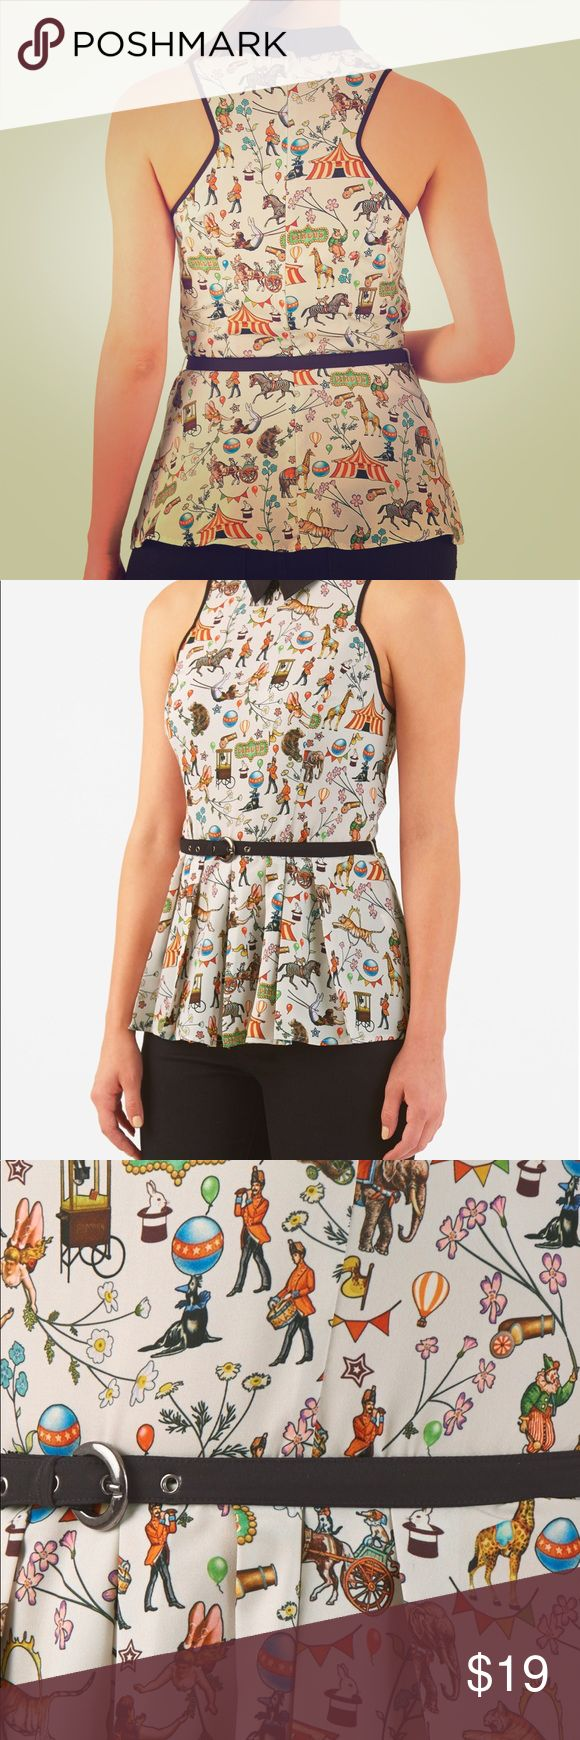 eShakti Circus Print Peplum Crepe Top - never worn Artfully tailored bodice with cut-away shoulders and a racerback. Colorful, feminine, vintage circus print top cinched in at the seamed waist with a removable contrast fabric belt.  Back zip with hook-and-eye closure. Contrast collar. Sleeveless. Pleated peplum waist. Hip length. Polyester, woven crepe, digital print, easy drape, no stretch, light-weight. Machine wash cold. eshakti Tops Blouses